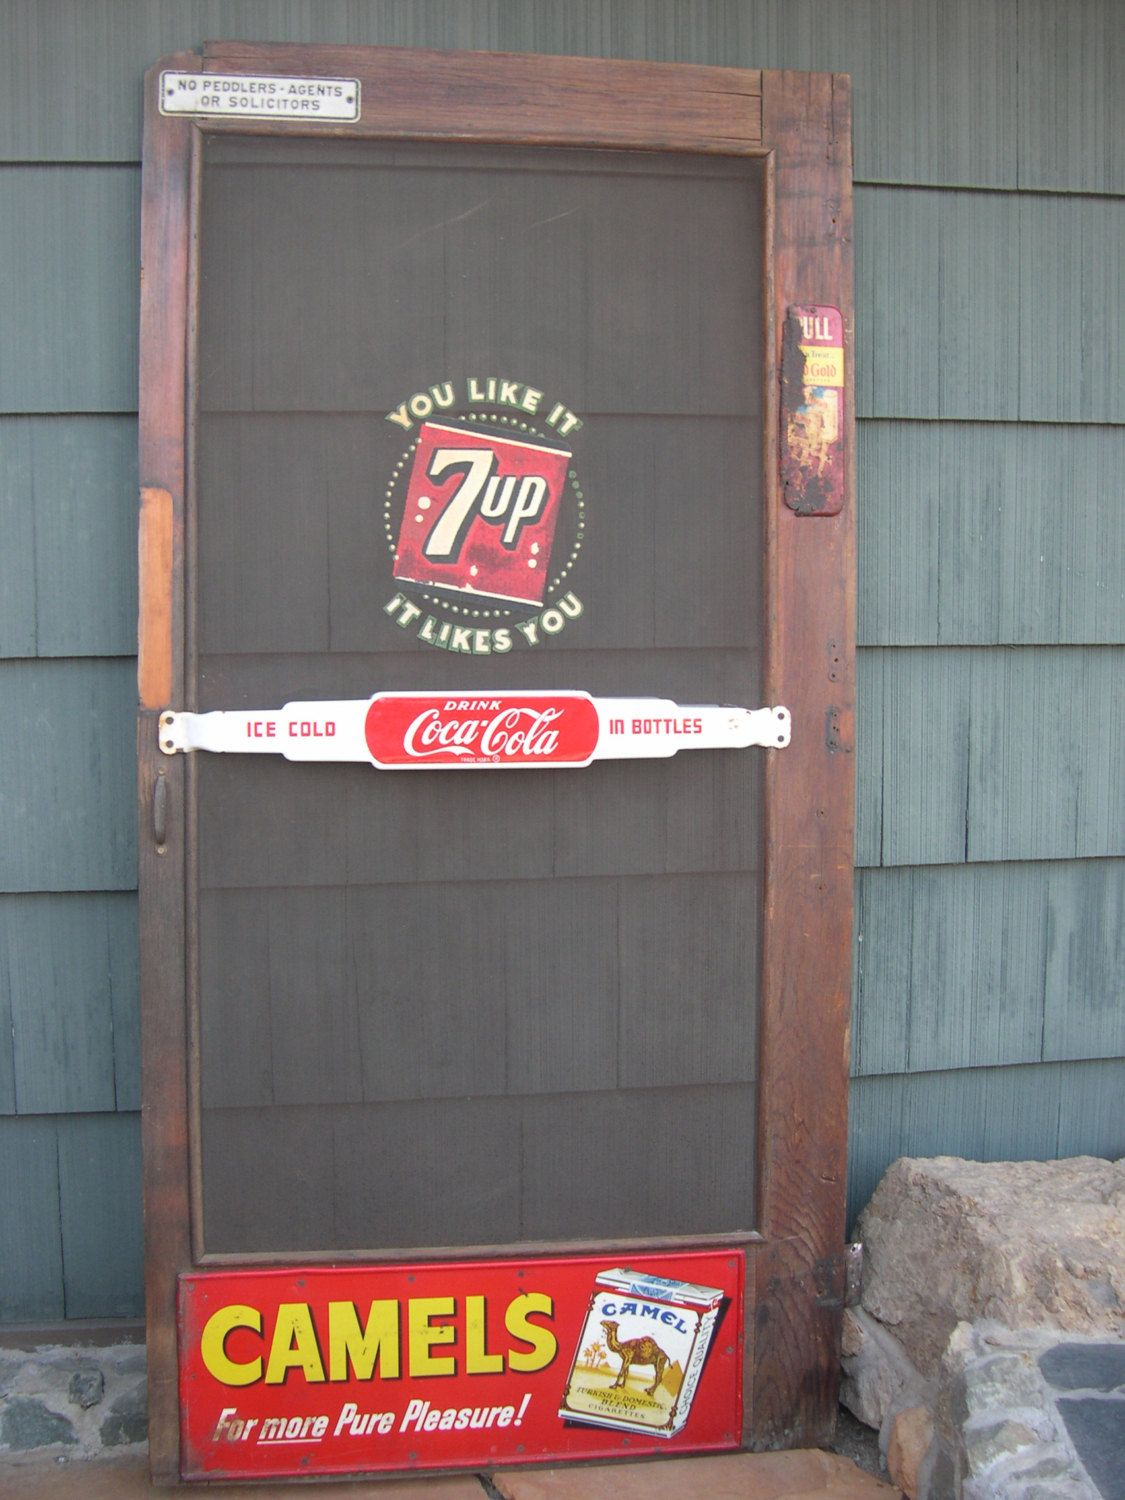 I Remember The Push Bar Advertising Signs The Small Town Stores Used